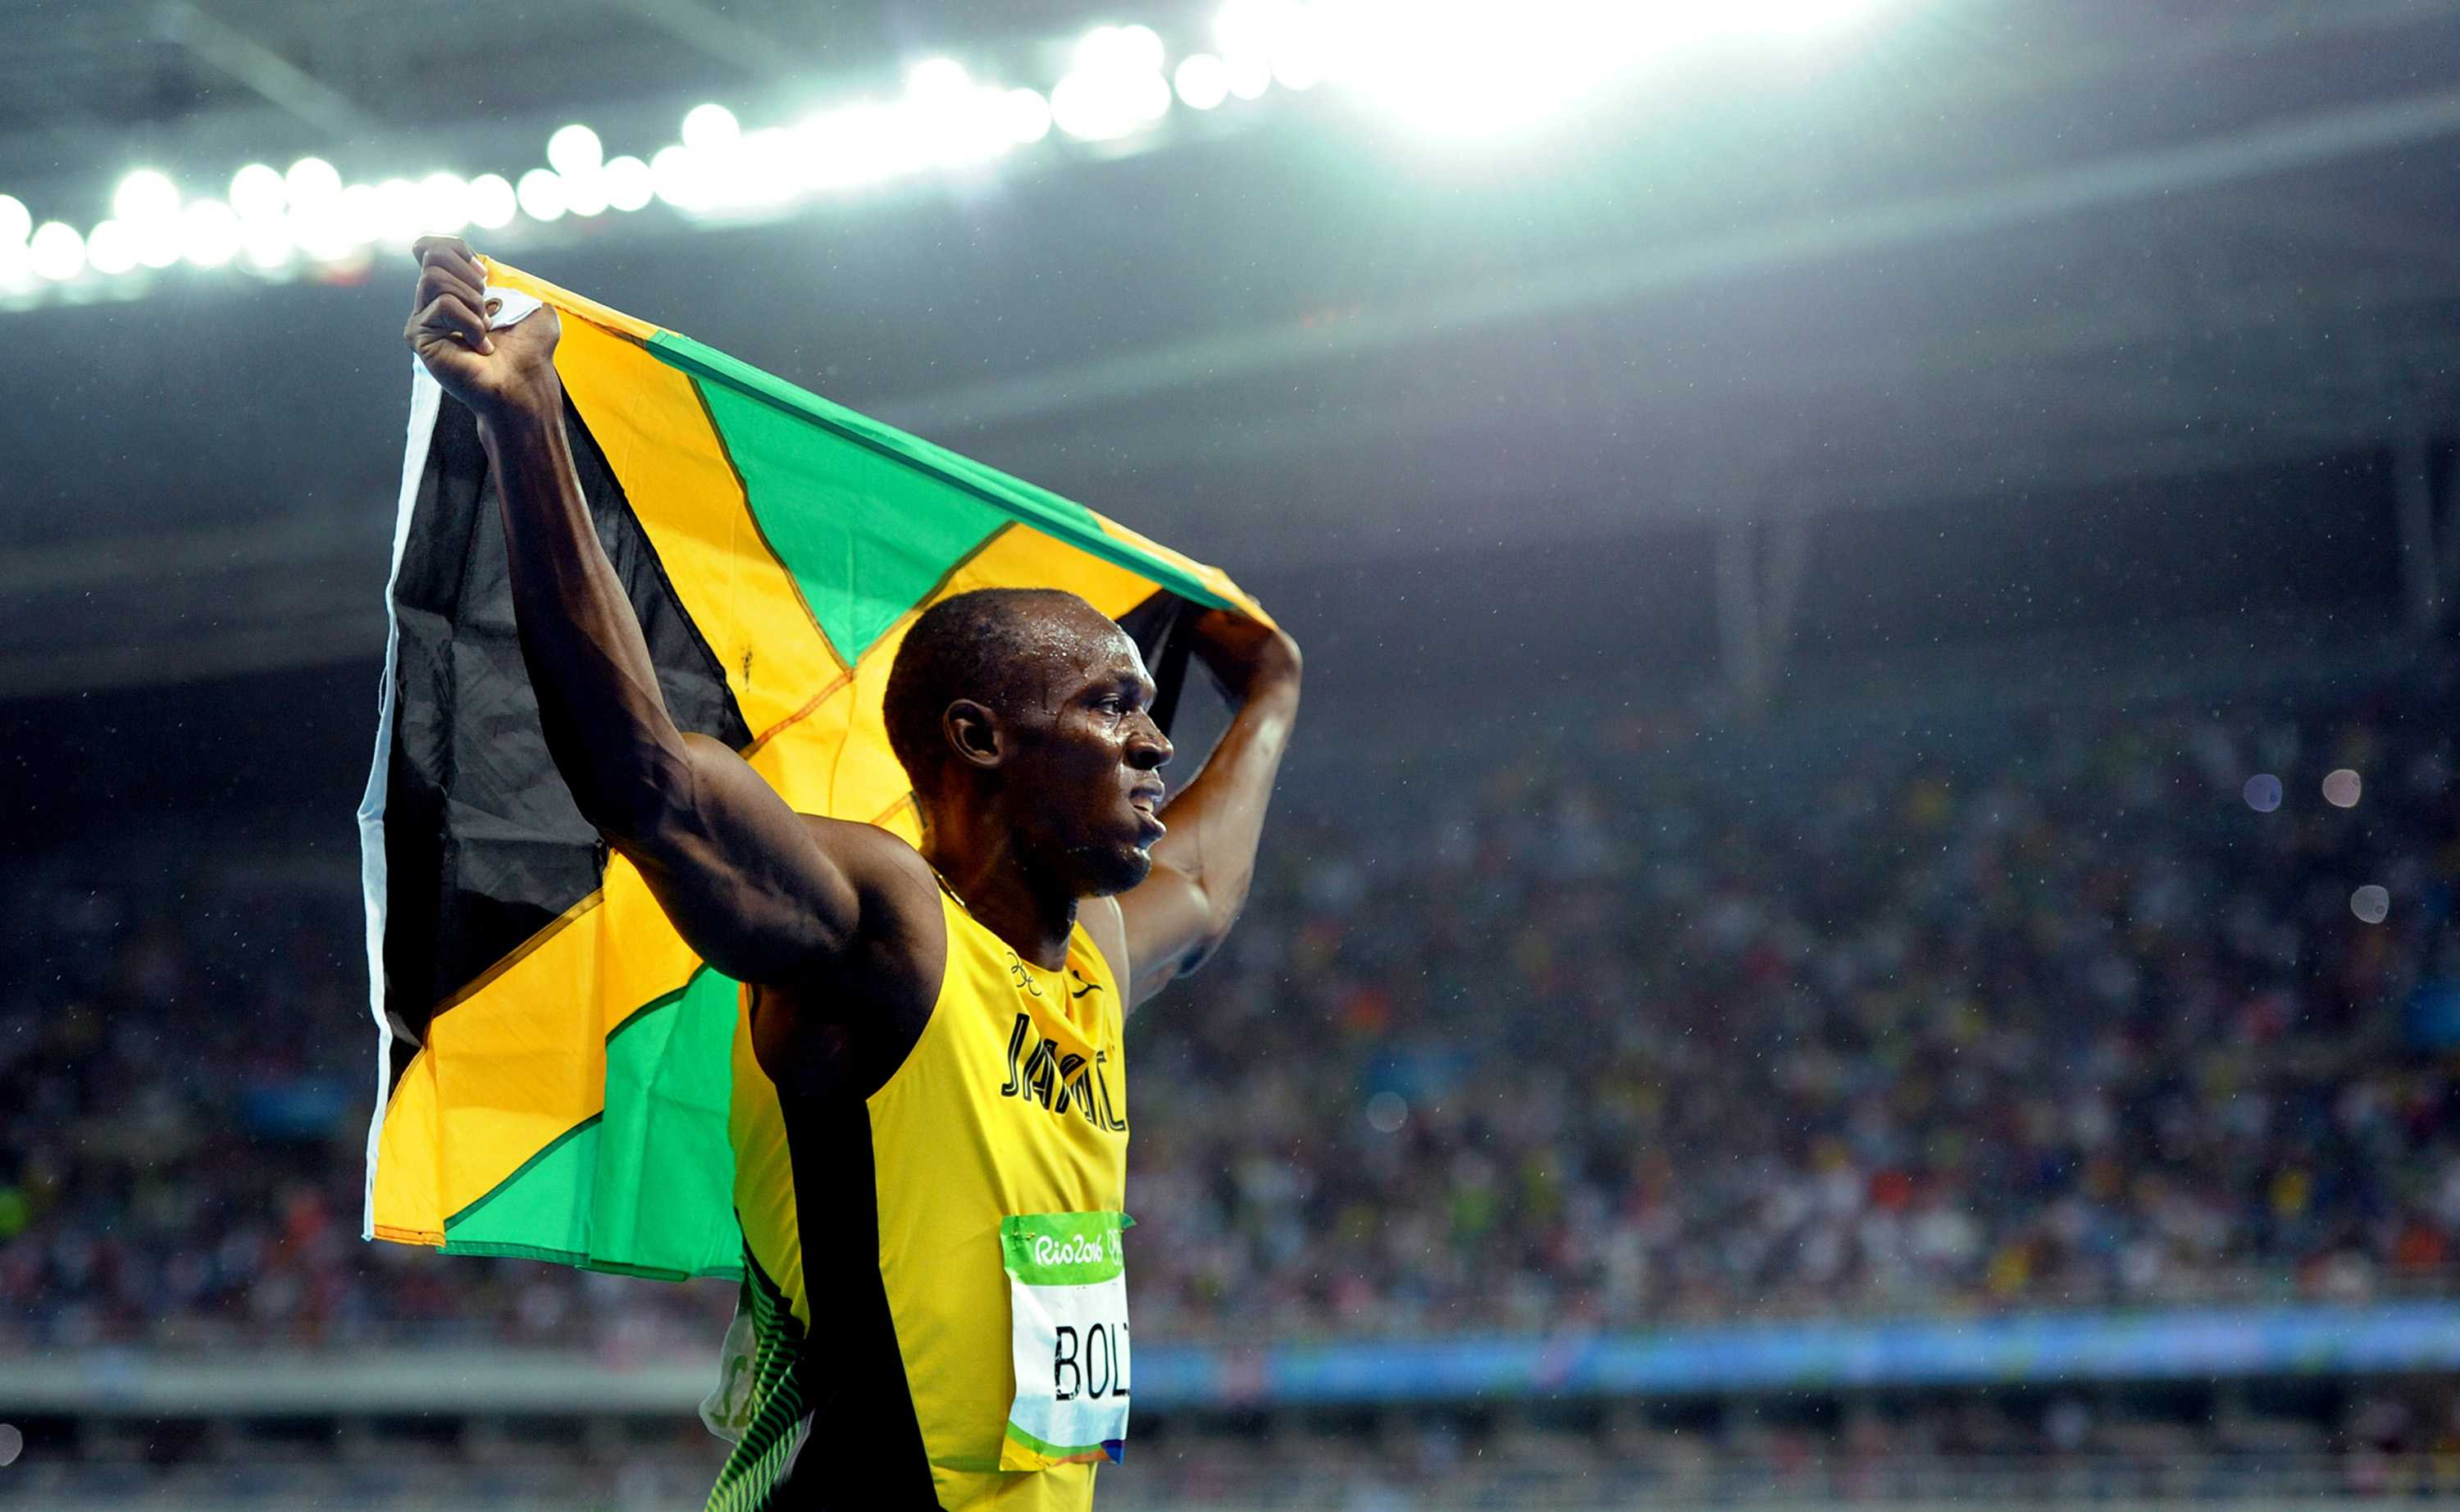 Jamaica's Usain Bolt celebrates after winning the 200m at the Summer Olympics on Thursday, Aug. 18, 2016, in Rio de Janeiro, Brazil. (Wally Skalij/Los Angeles Times/TNS) Photo credit: MCT